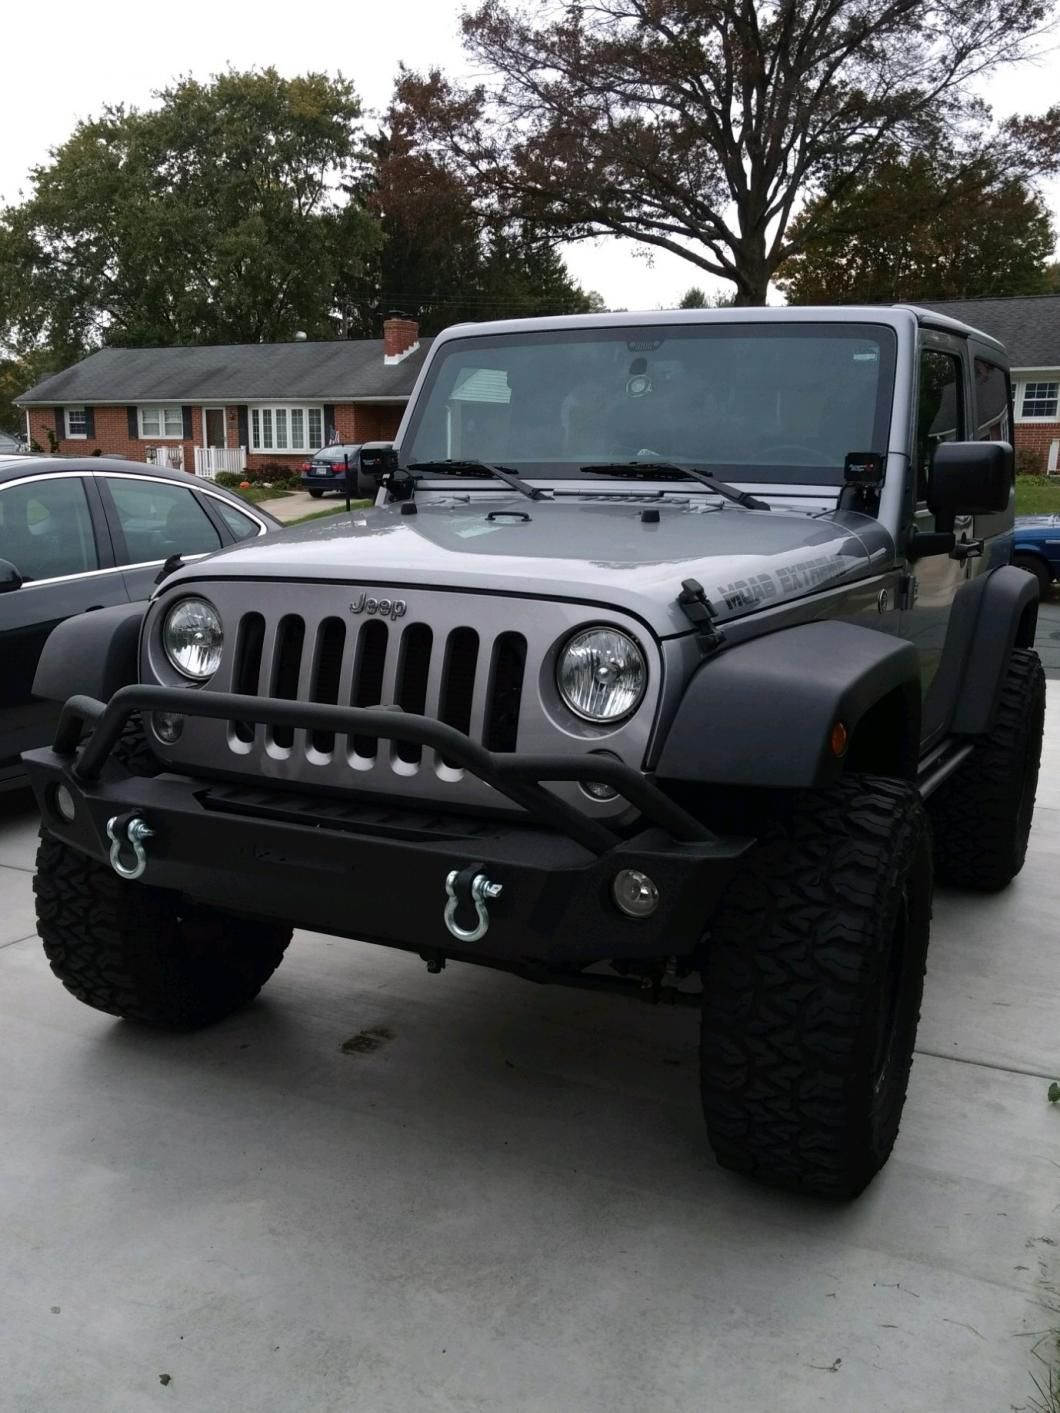 Front Bumper Barricade Jeep Wrangler Extreme Hd J103684 07 18 Jeep Wrangler Jk In 2020 With Images Jeep Cars Jeep Wrangler Jk Jeep Wrangler Bumpers